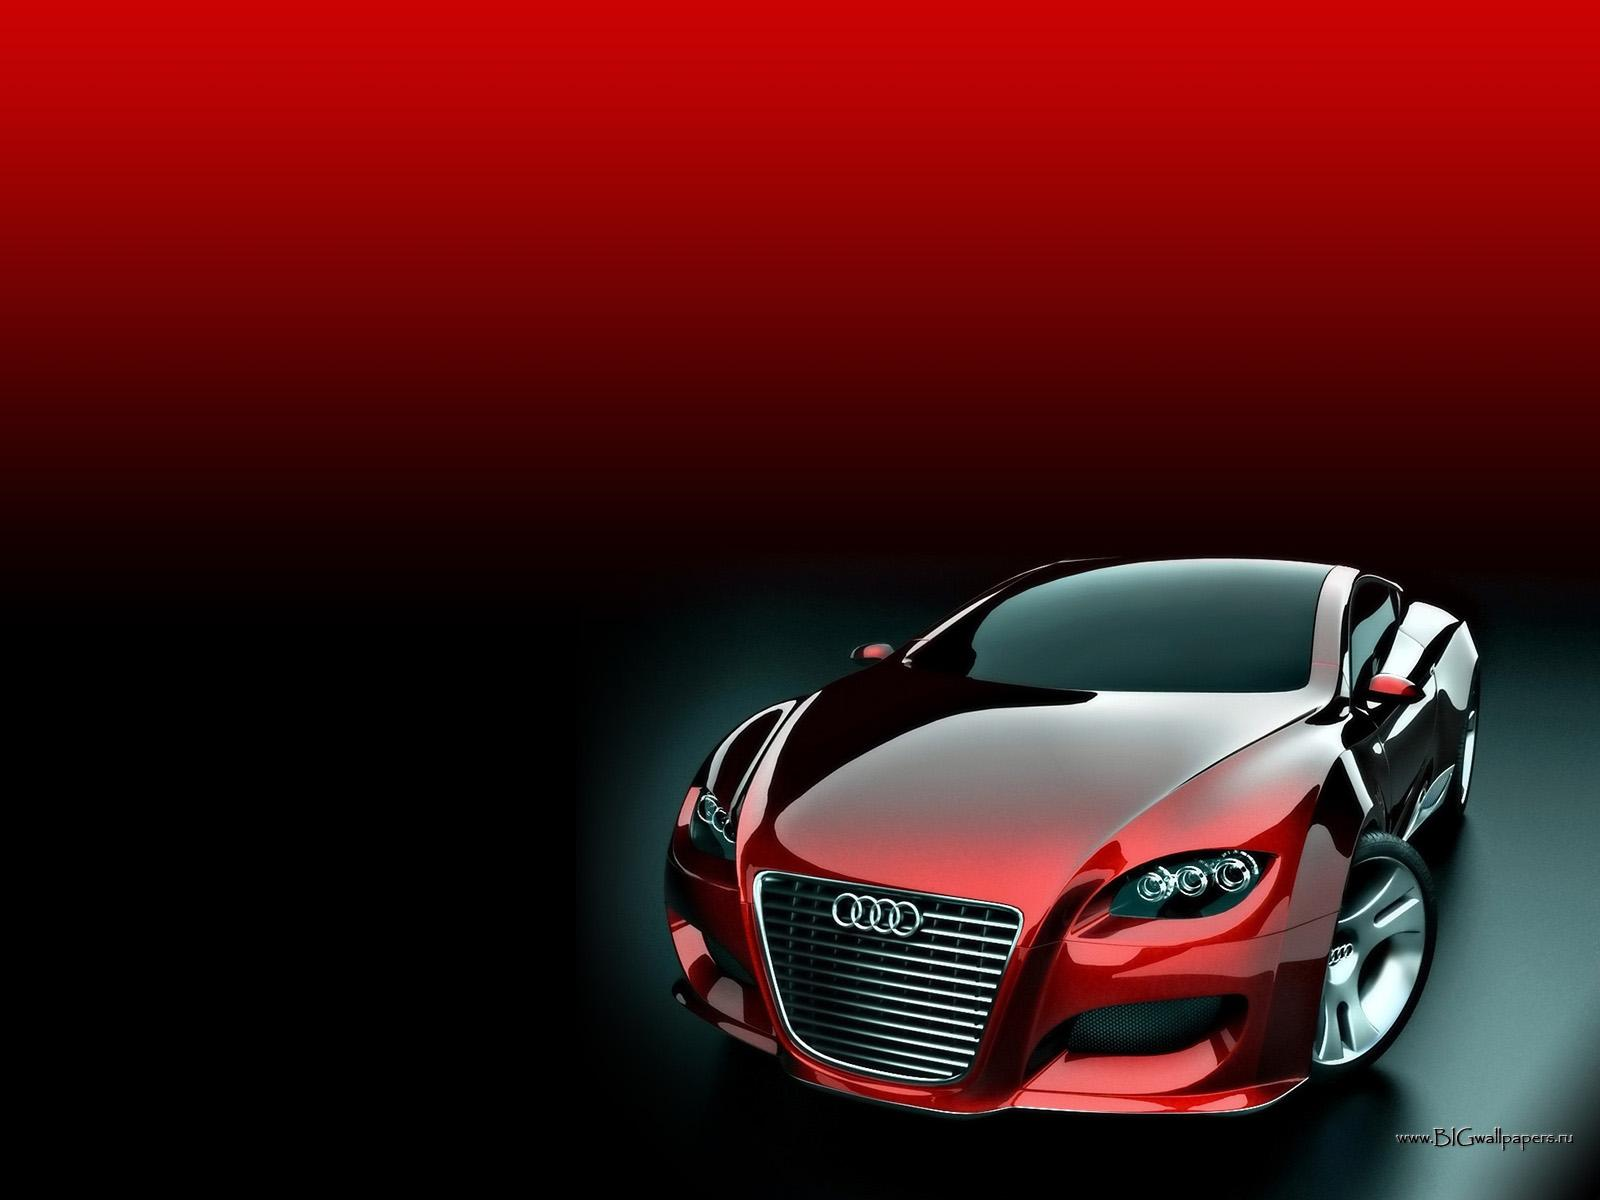 Car Background Images 9 Thumb